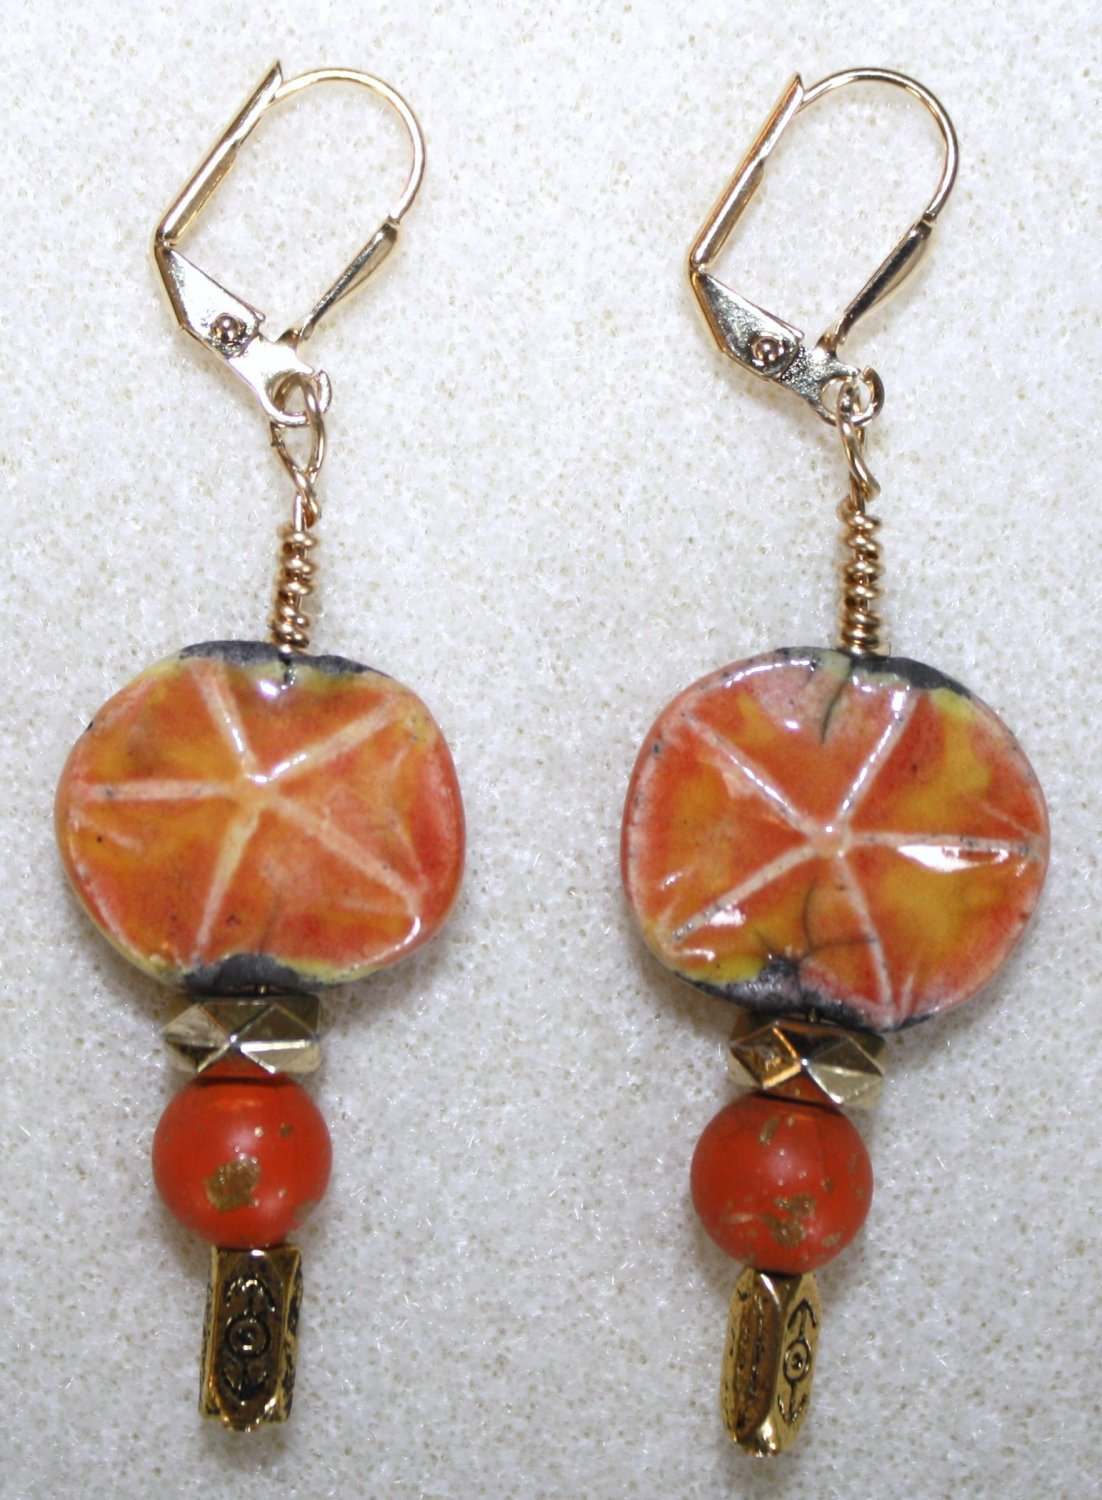 Tangerine Starfish Earrings - Item #E67